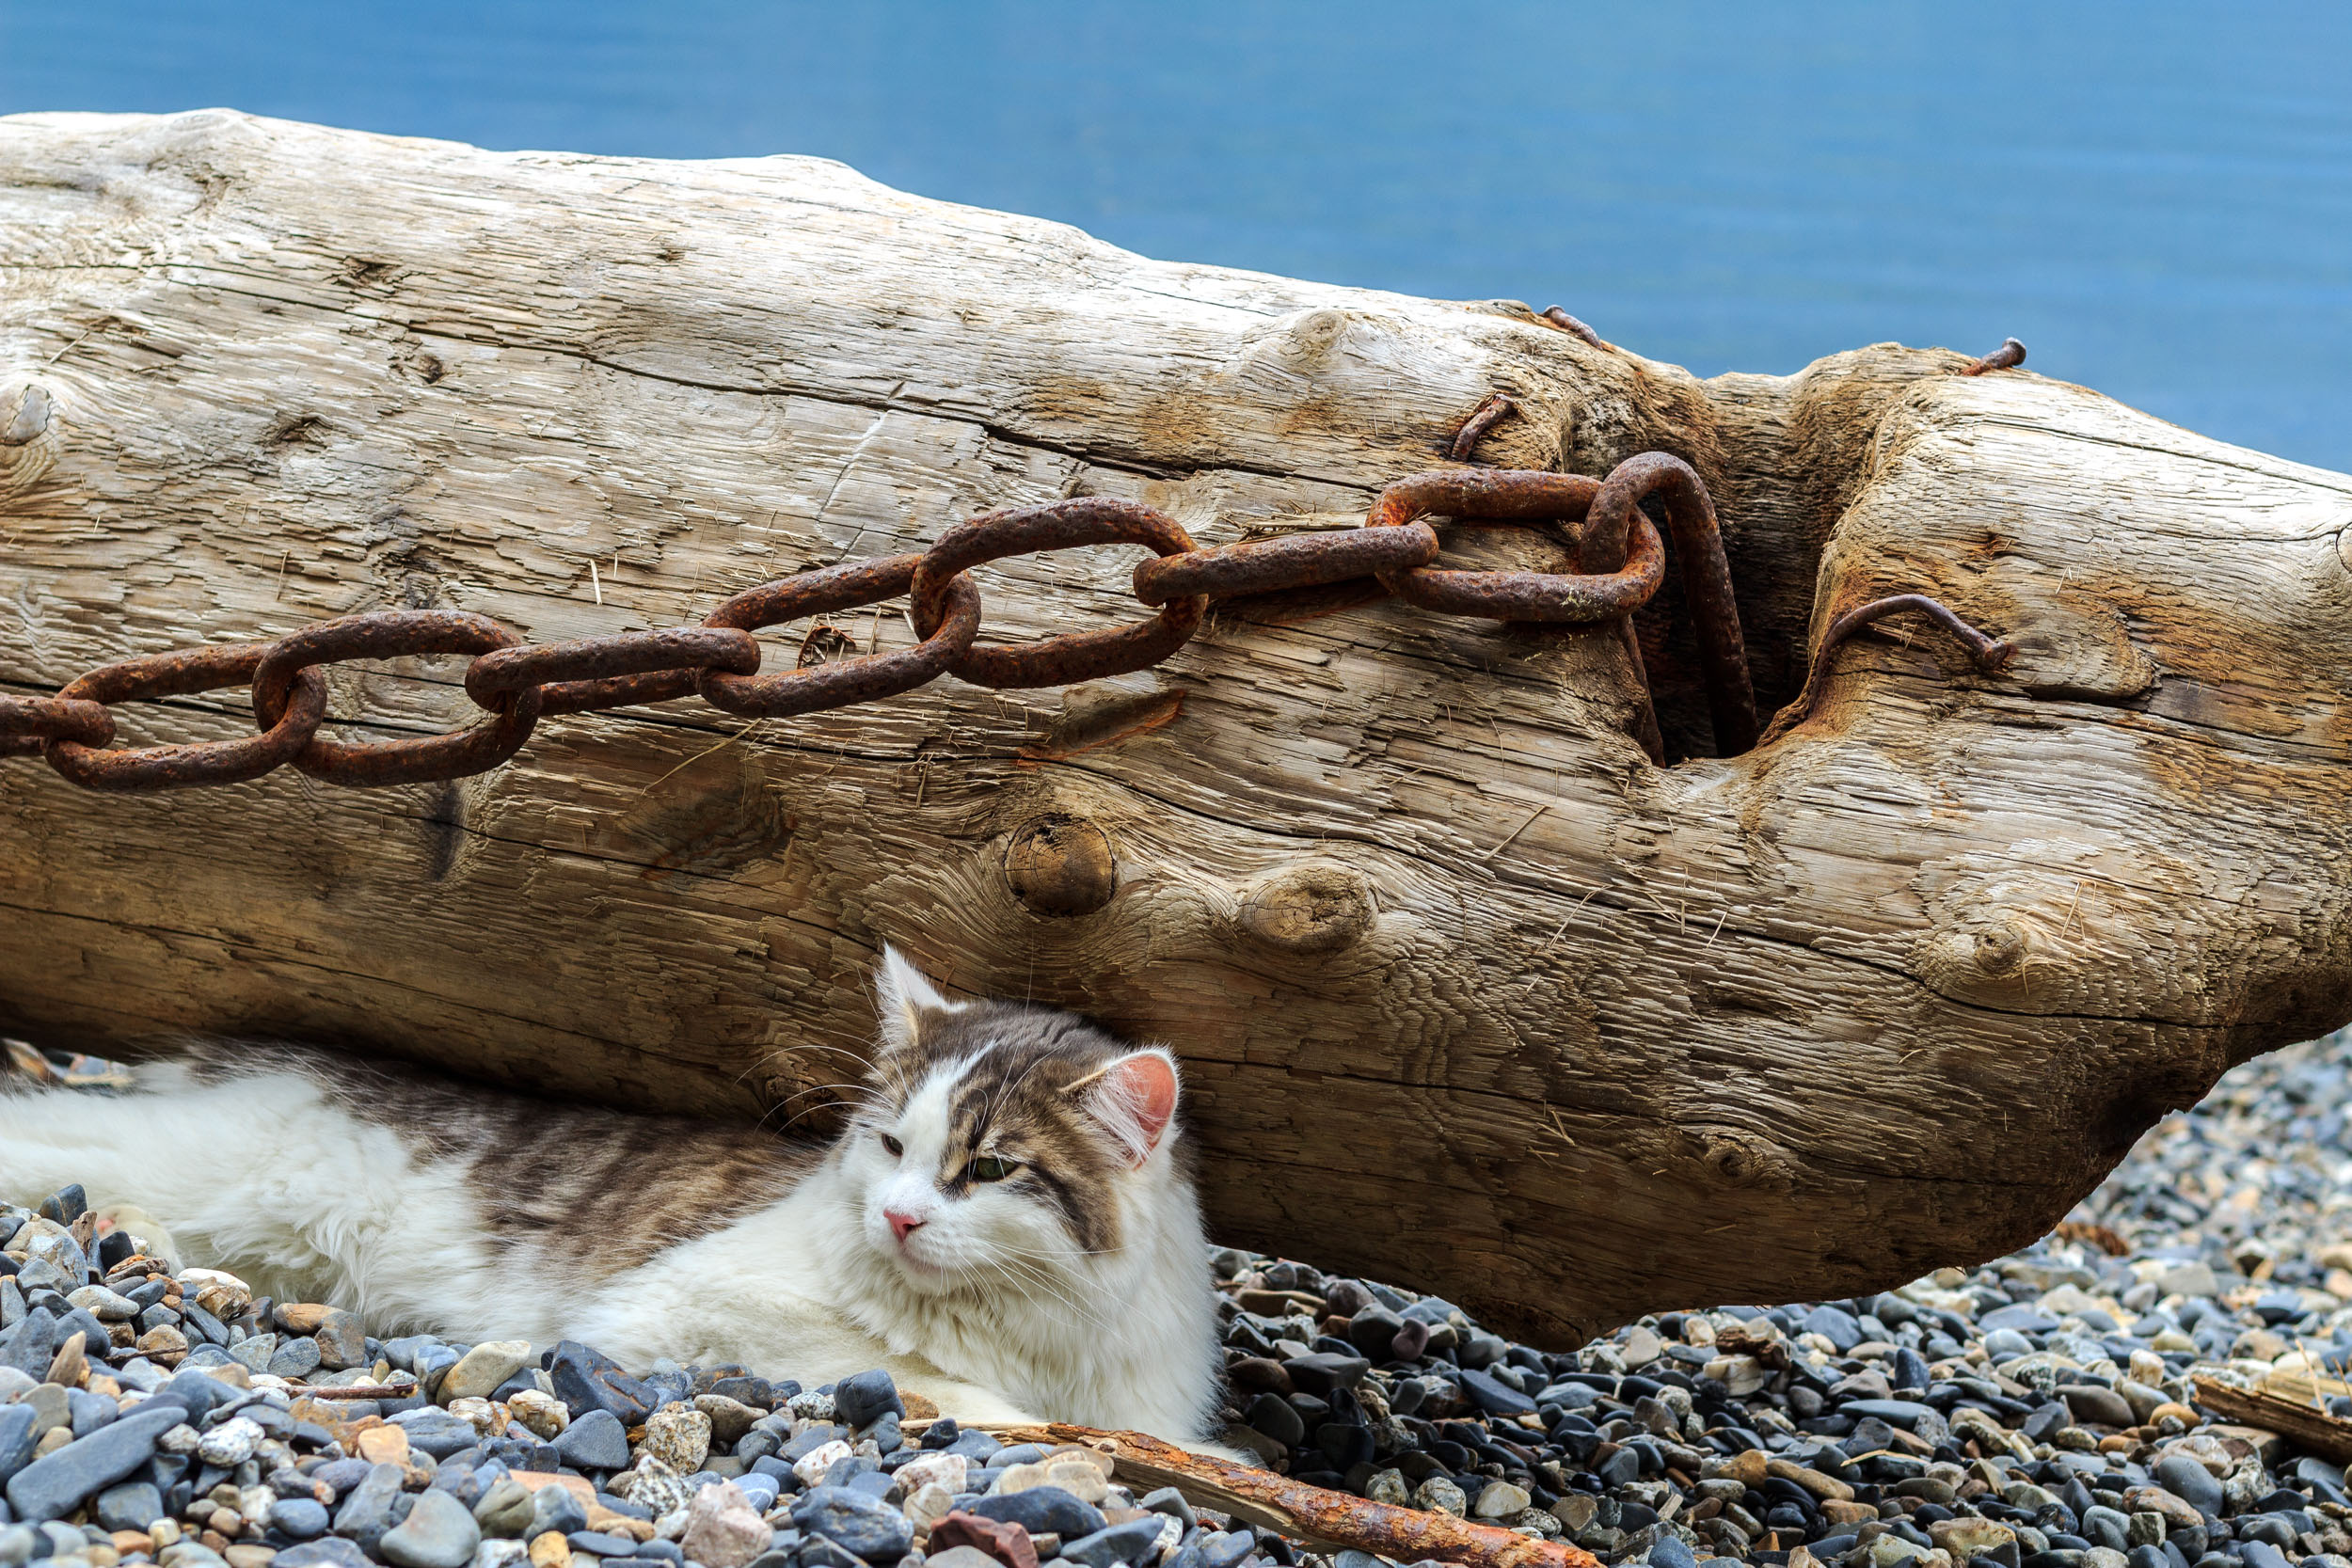 A Kootenay Kitty at Cooper's Beach - Silverton BC  Copyright © Afro Boy Productions. All rights reserved.